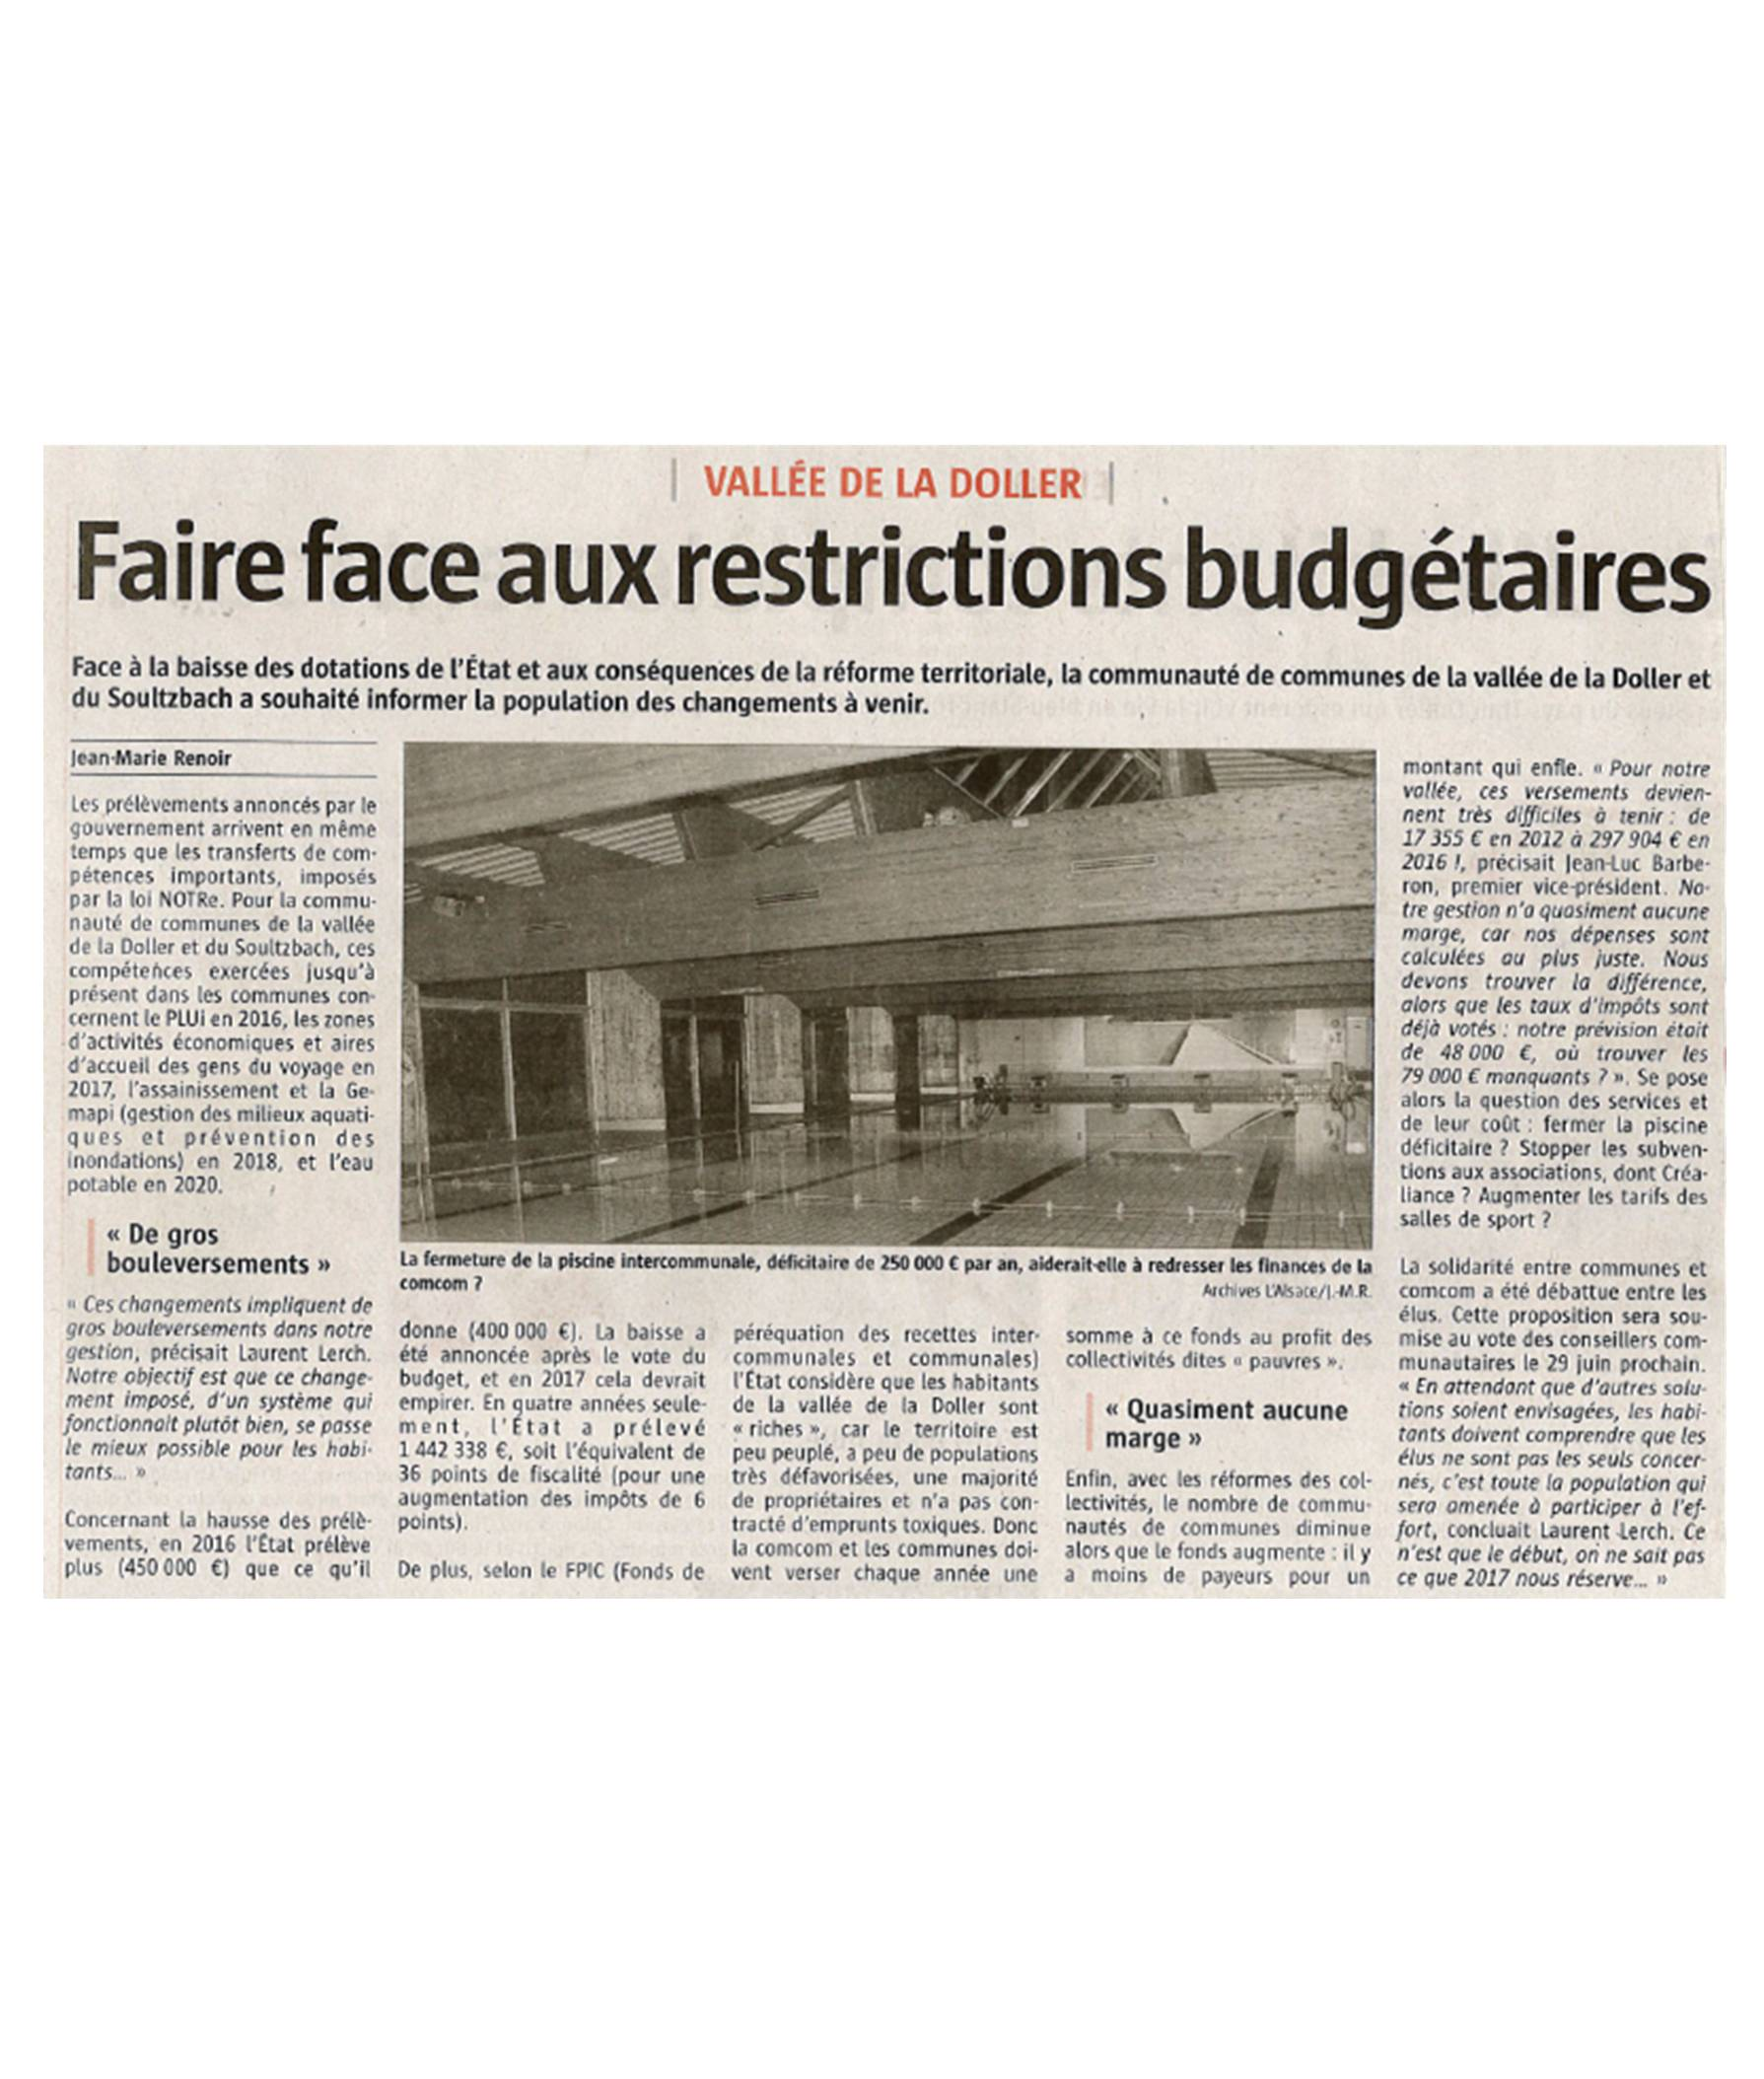 Faire face aux restrictions budgetaires - L'Aslsace - 19-06-2016